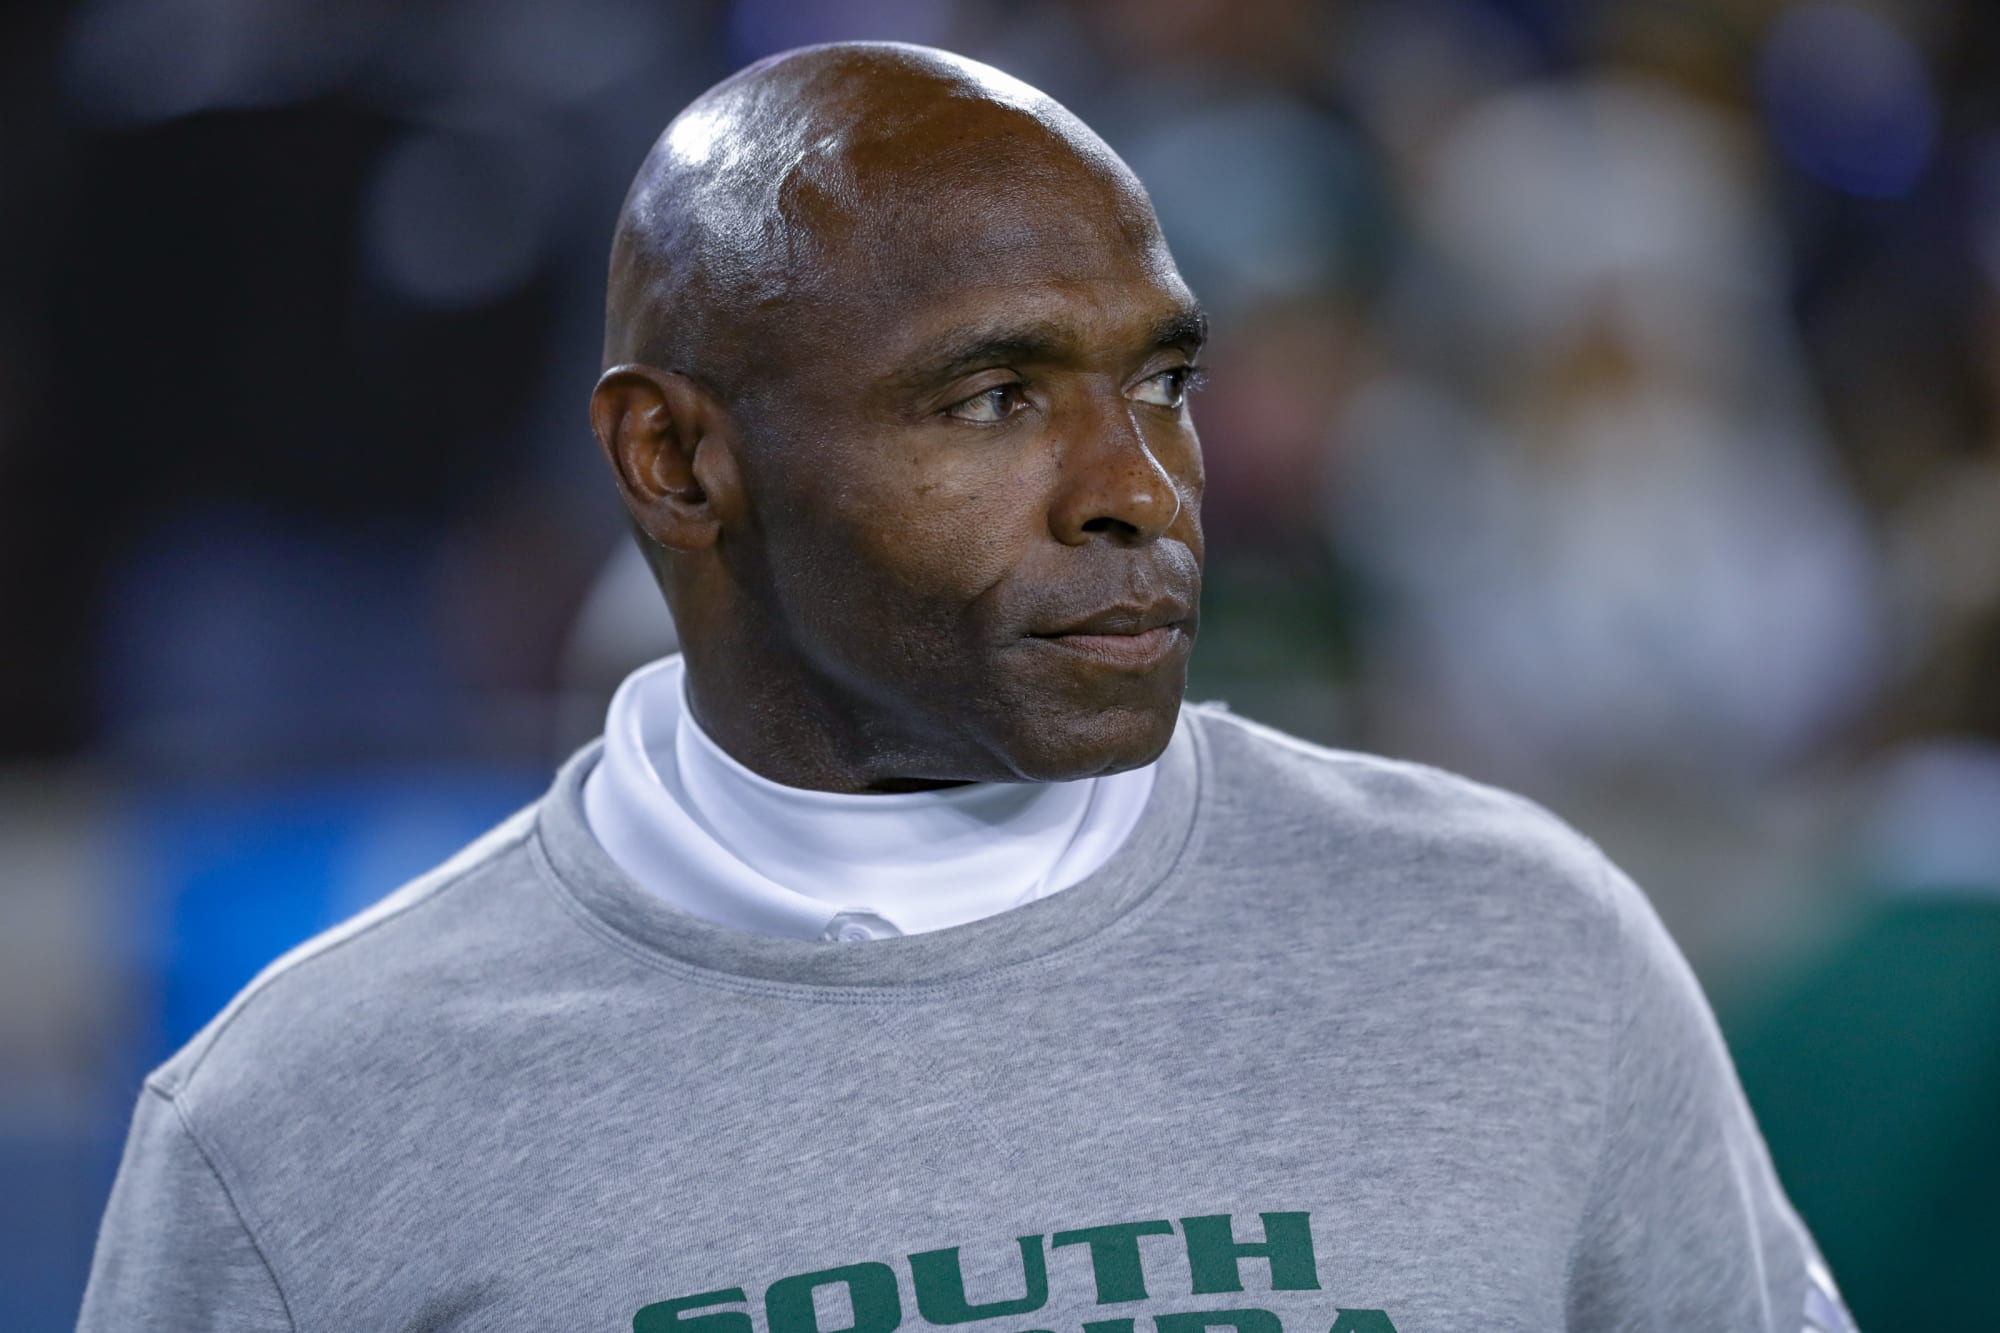 Texas Football: Former HC Charlie Strong under NCAA inquiry